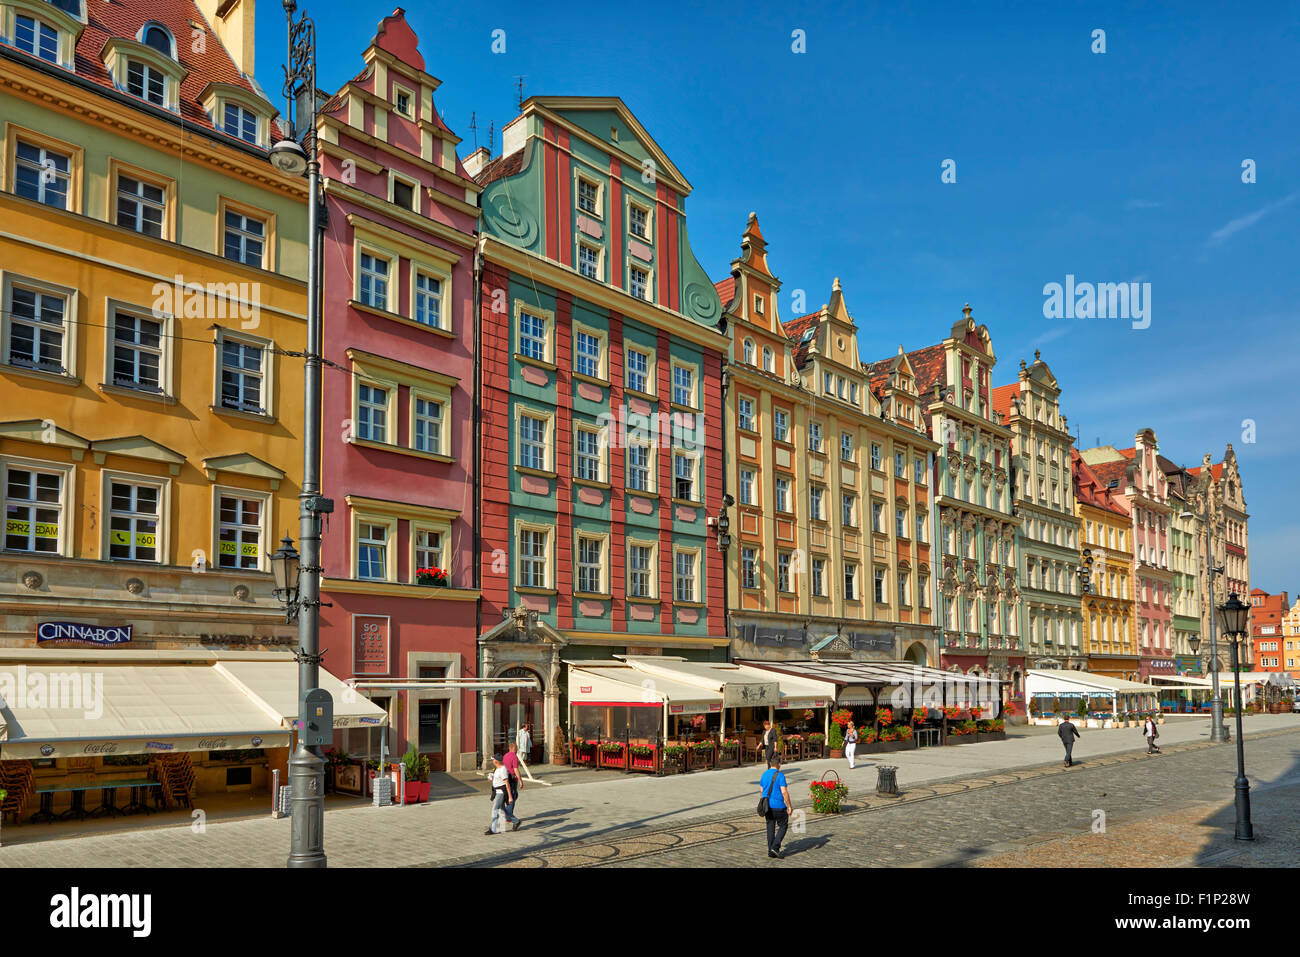 Market Square or Ryneck of Wroclaw, Lower Silesia, Poland, Europe - Stock Image